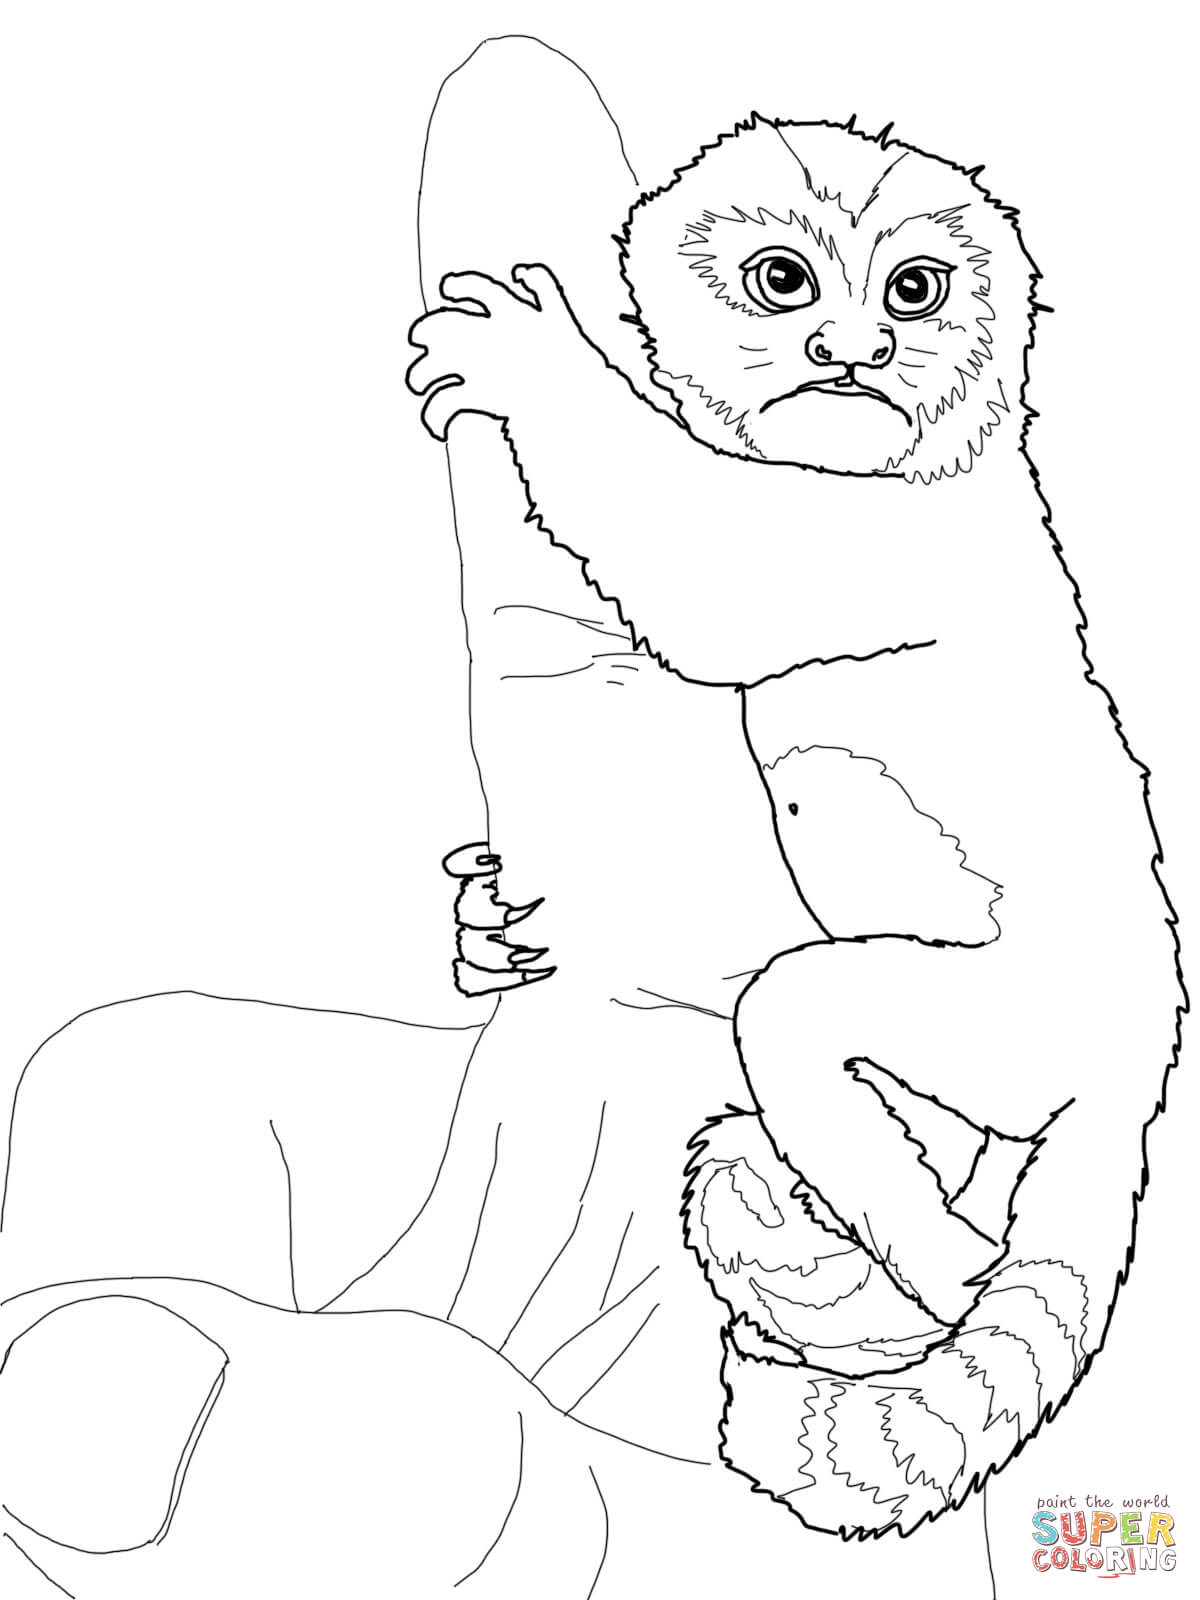 Pygmy Marmoset clipart #3, Download drawings